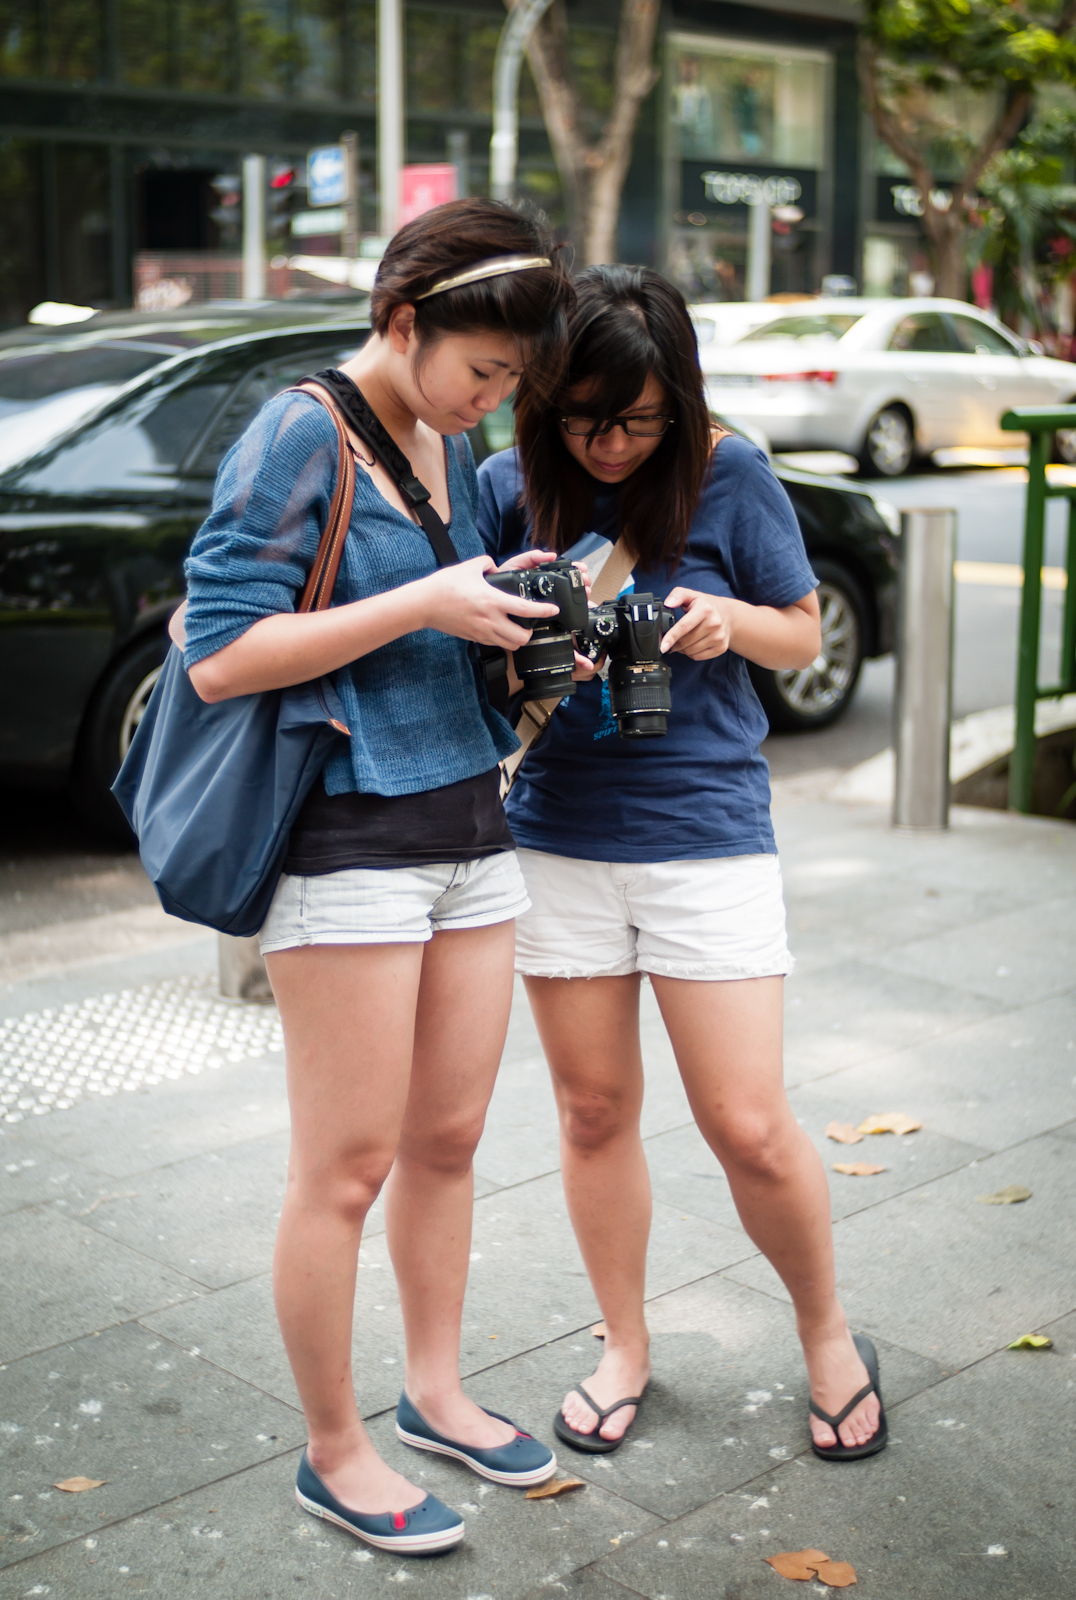 Two photographers checking their images on their camera screens